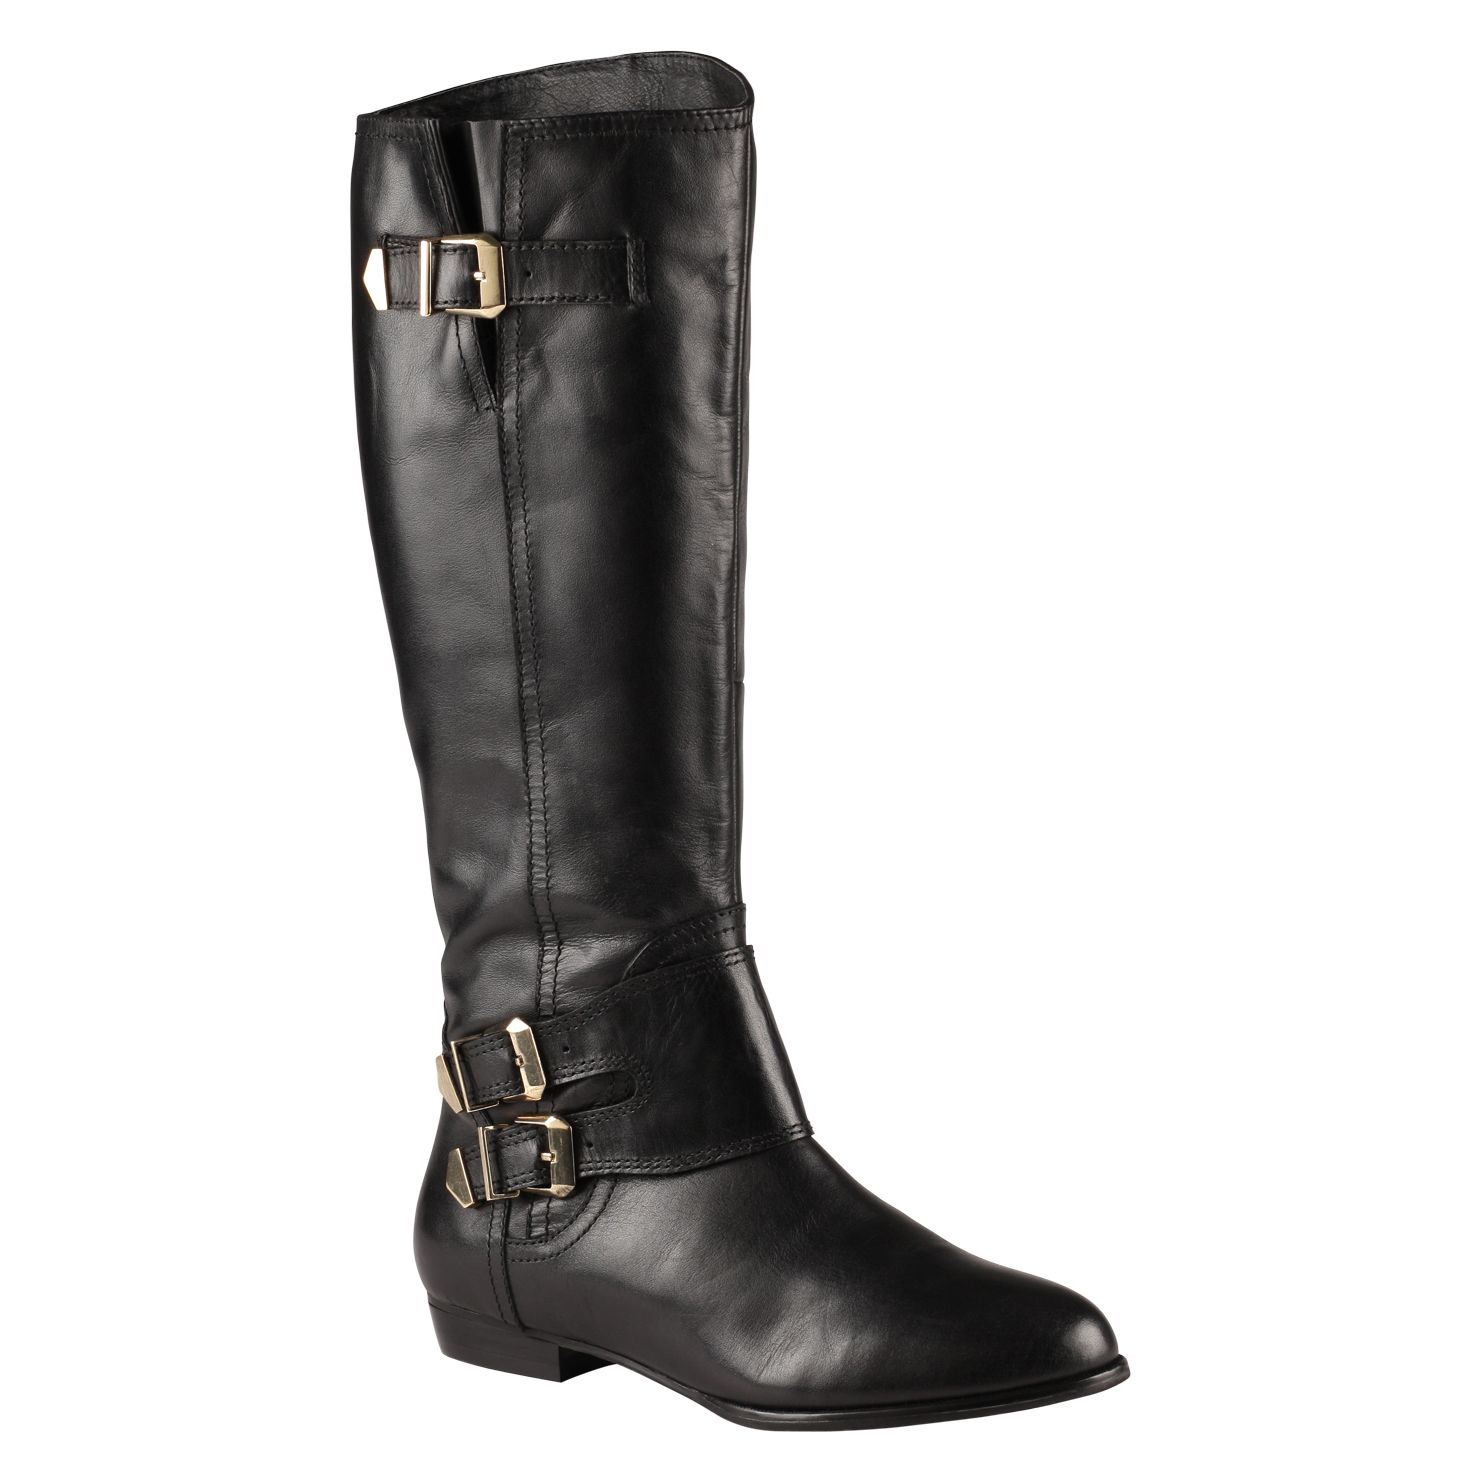 Biesinger Knee High Boots